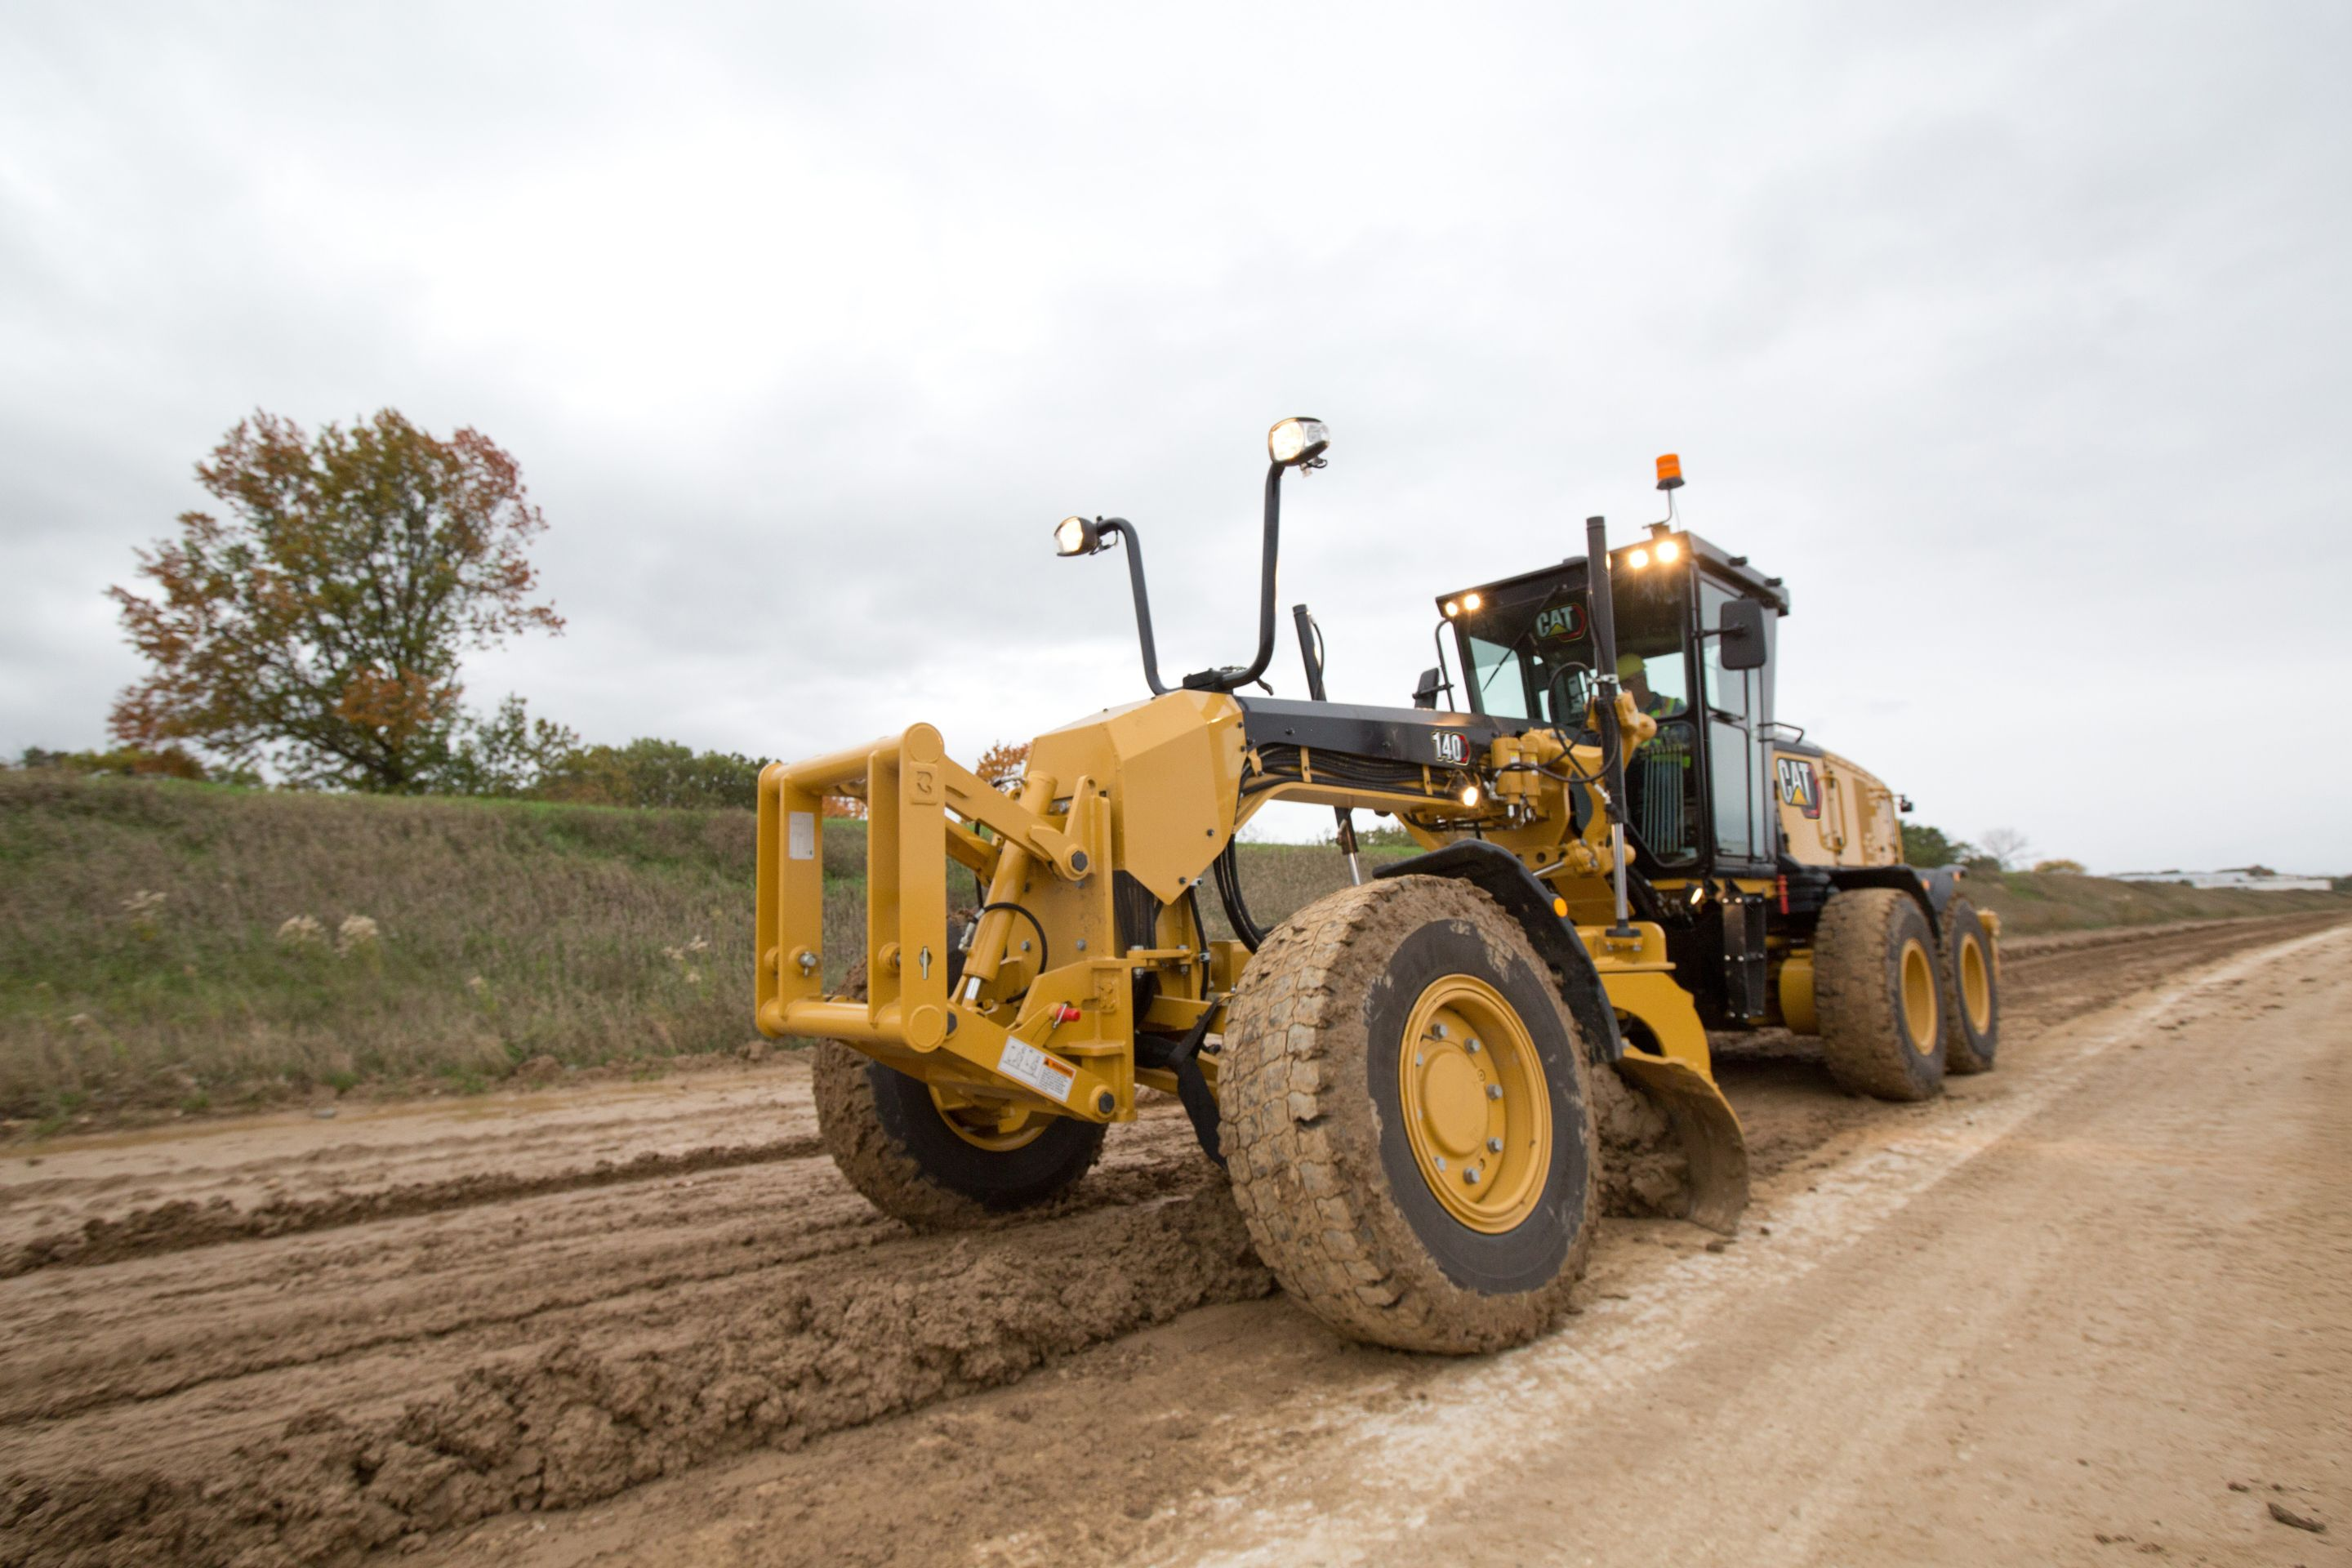 7 Tips & What To Look for When Buying a Used Motor Grader